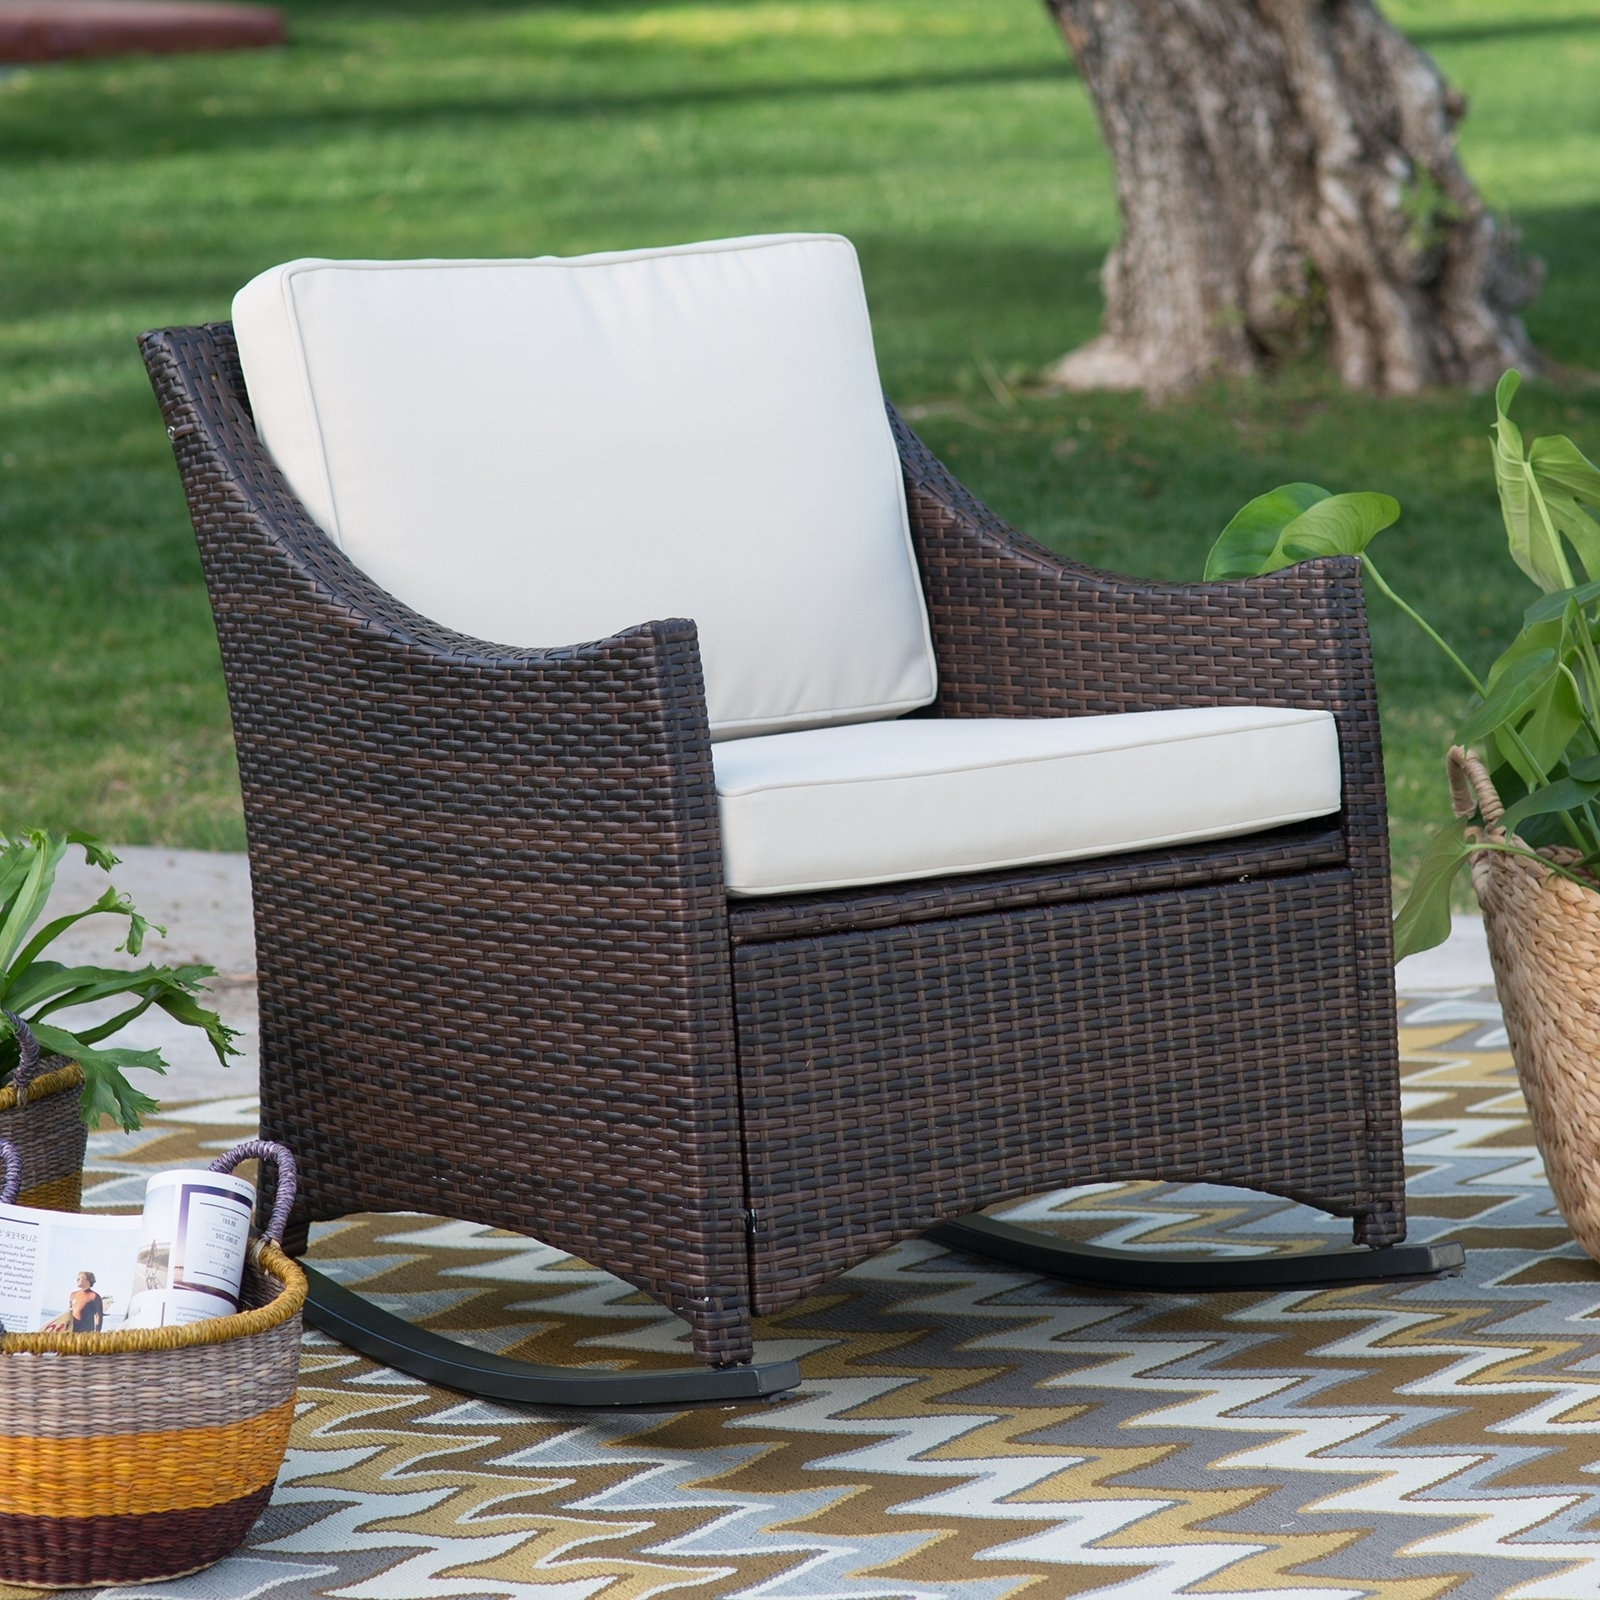 Rattan Outdoor Rocking Chairs In Current Wicker Outdoor Rocking Chair Discount Chairs Gracie's 20 Cushions (View 5 of 20)